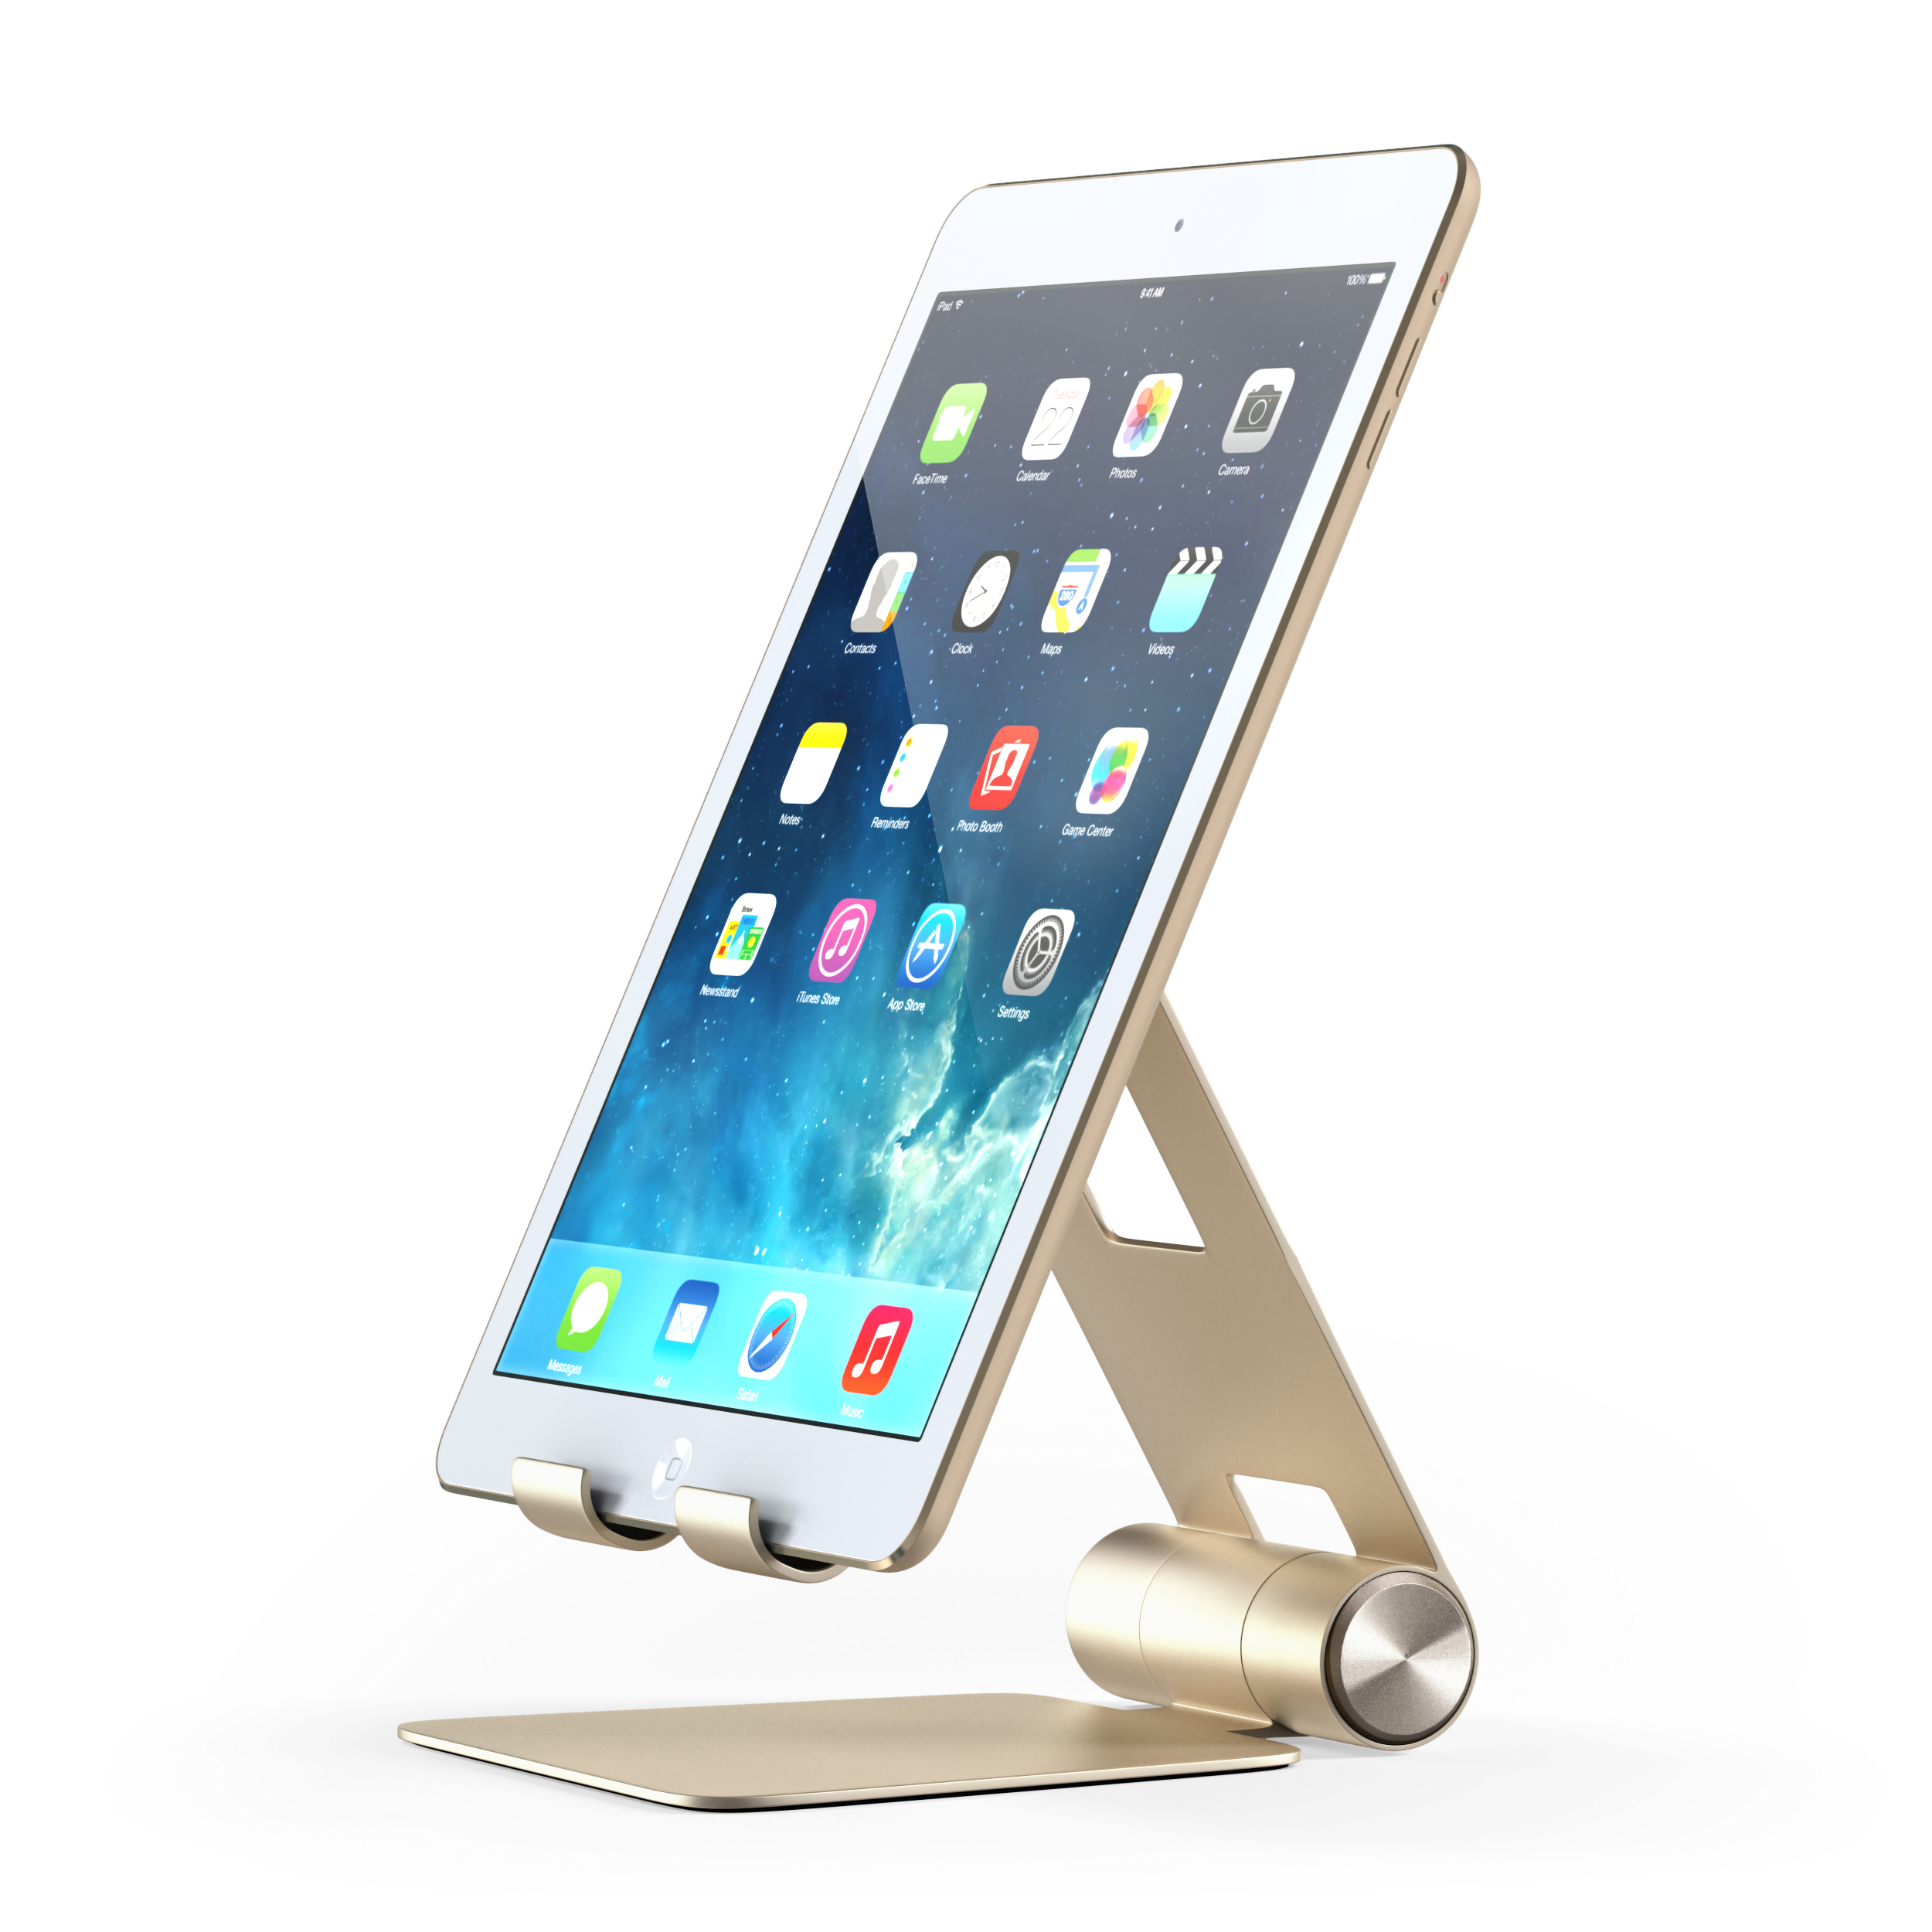 Satechi R1 Aluminum Multi-Angle Foldable Tablet Stand for iPad, iPad Pro, iPhone 7+, Samsung S8, MacBook 2015/2016, Microsoft Surface, Nintendo Switch and more (Gold)